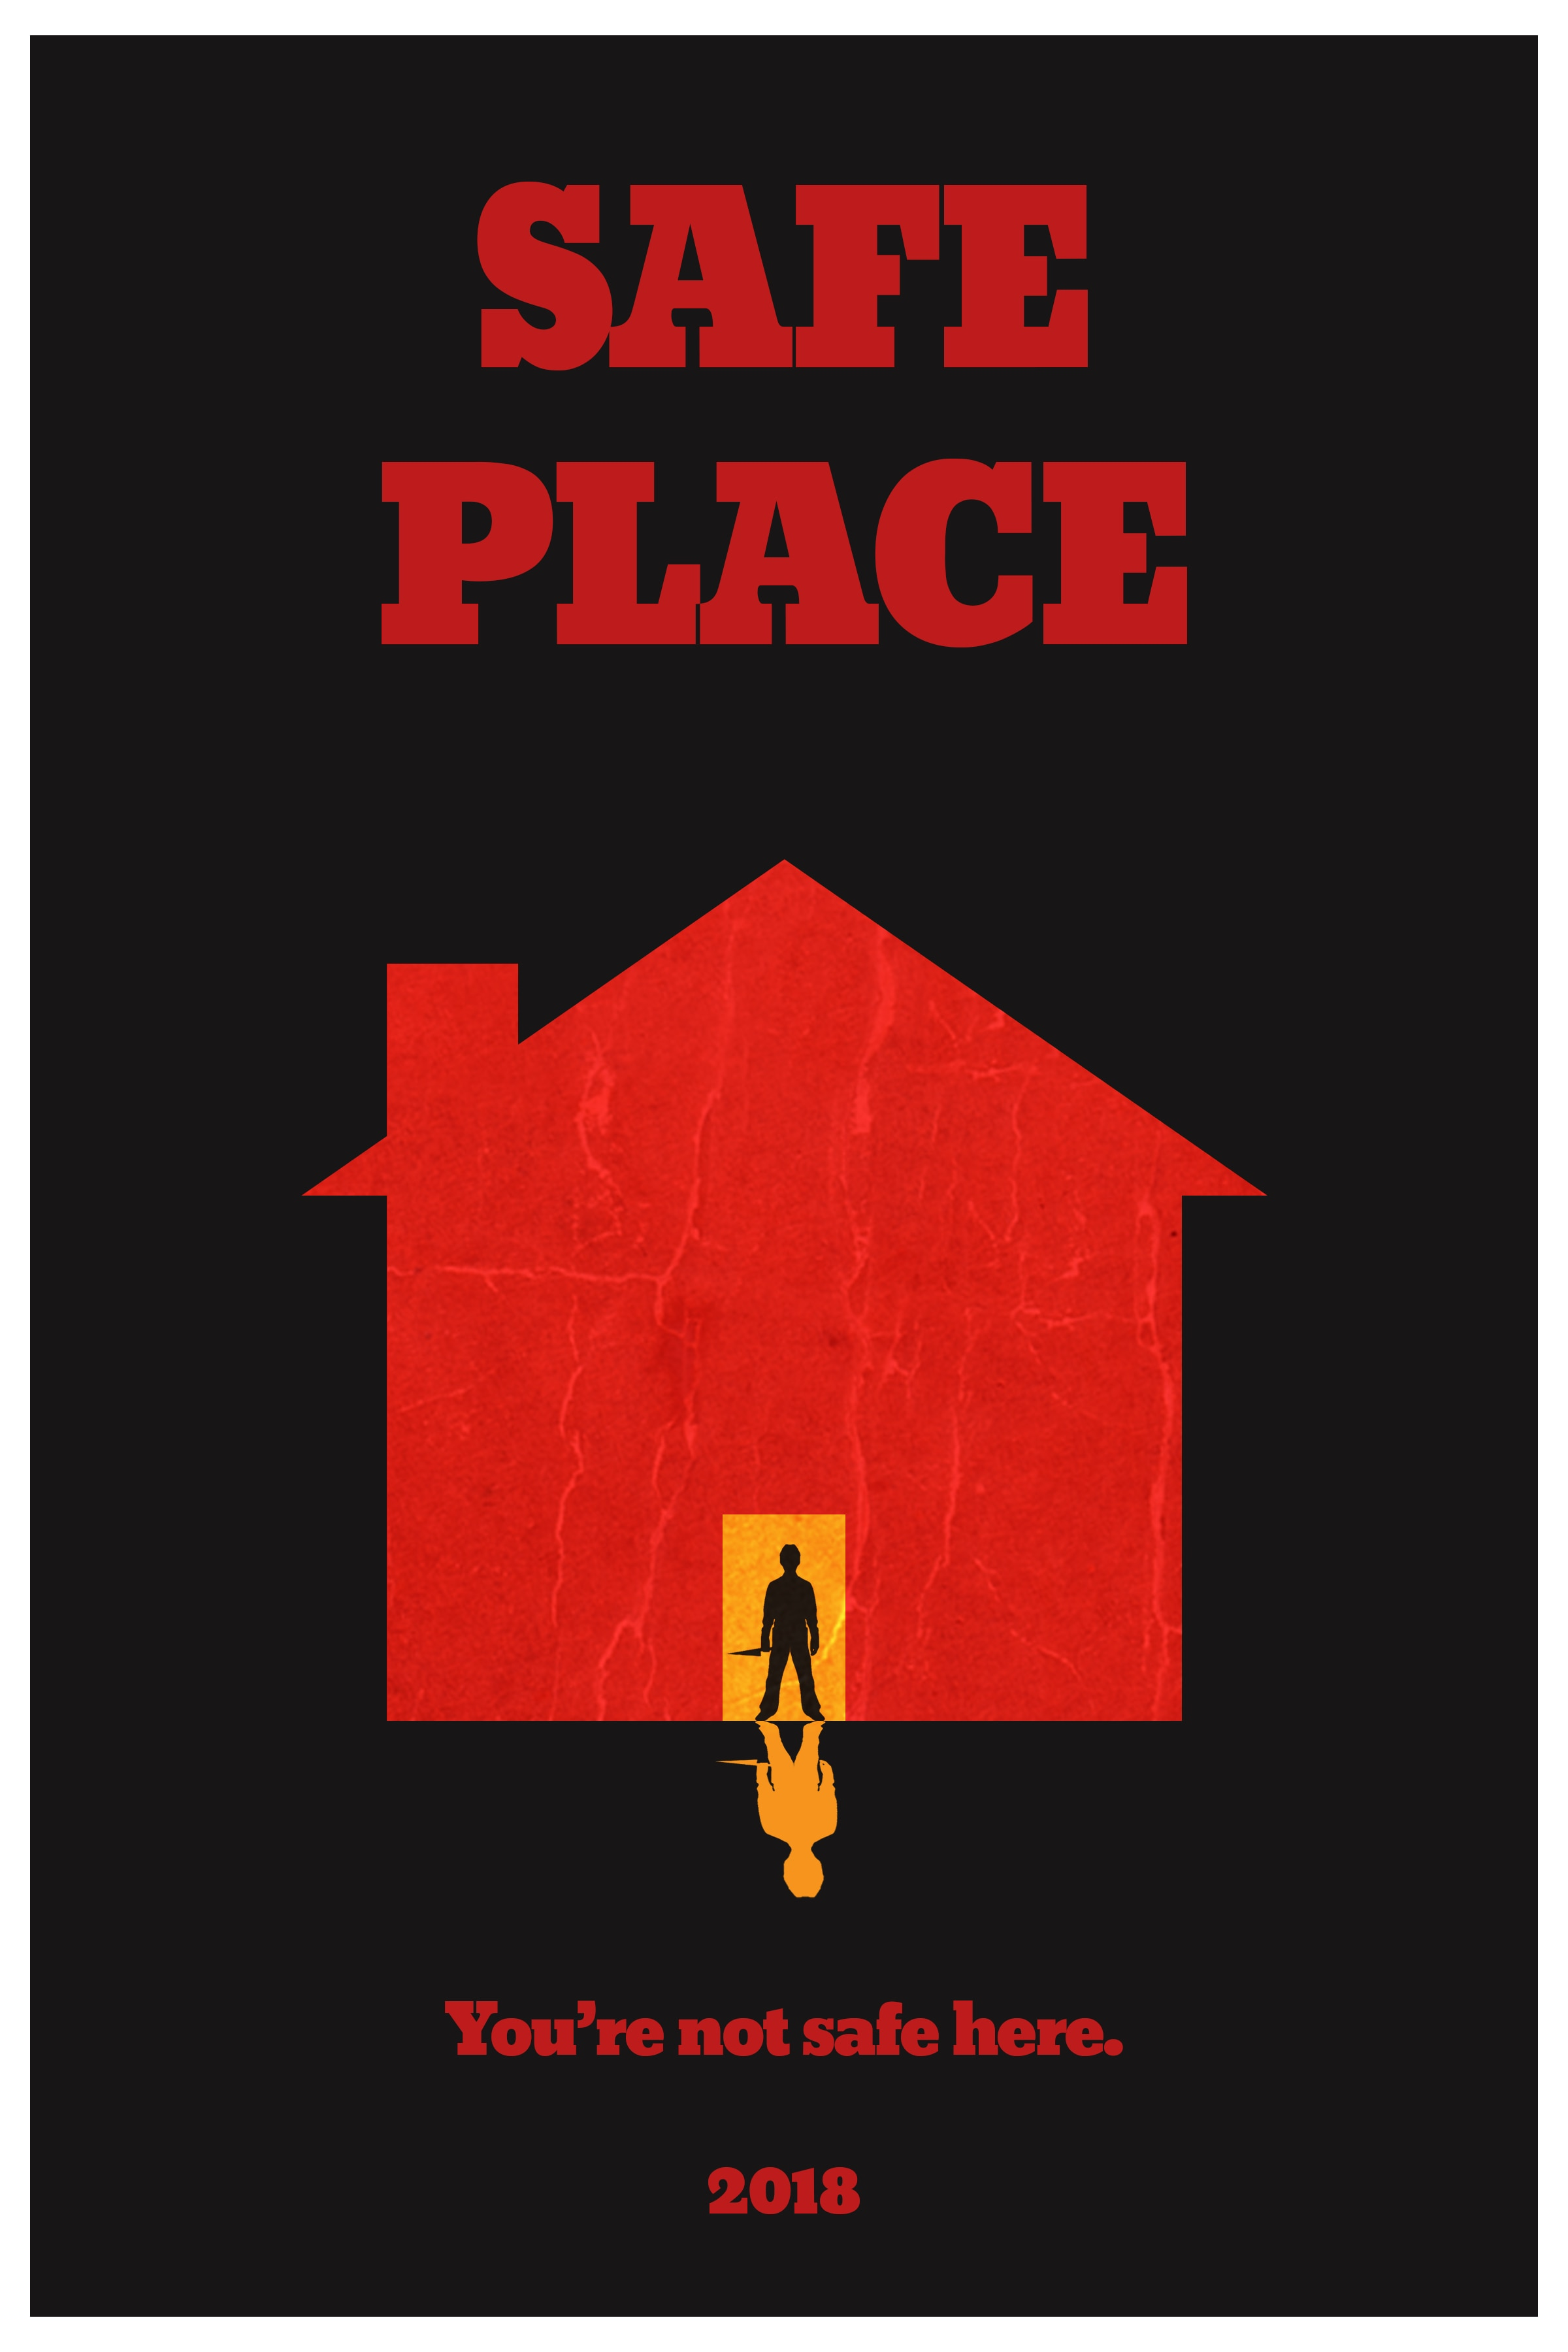 Safe Place Minimalist 1 No Moon - Exclusive: Safe Place Teaser, Synopsis, and Poster Reveal